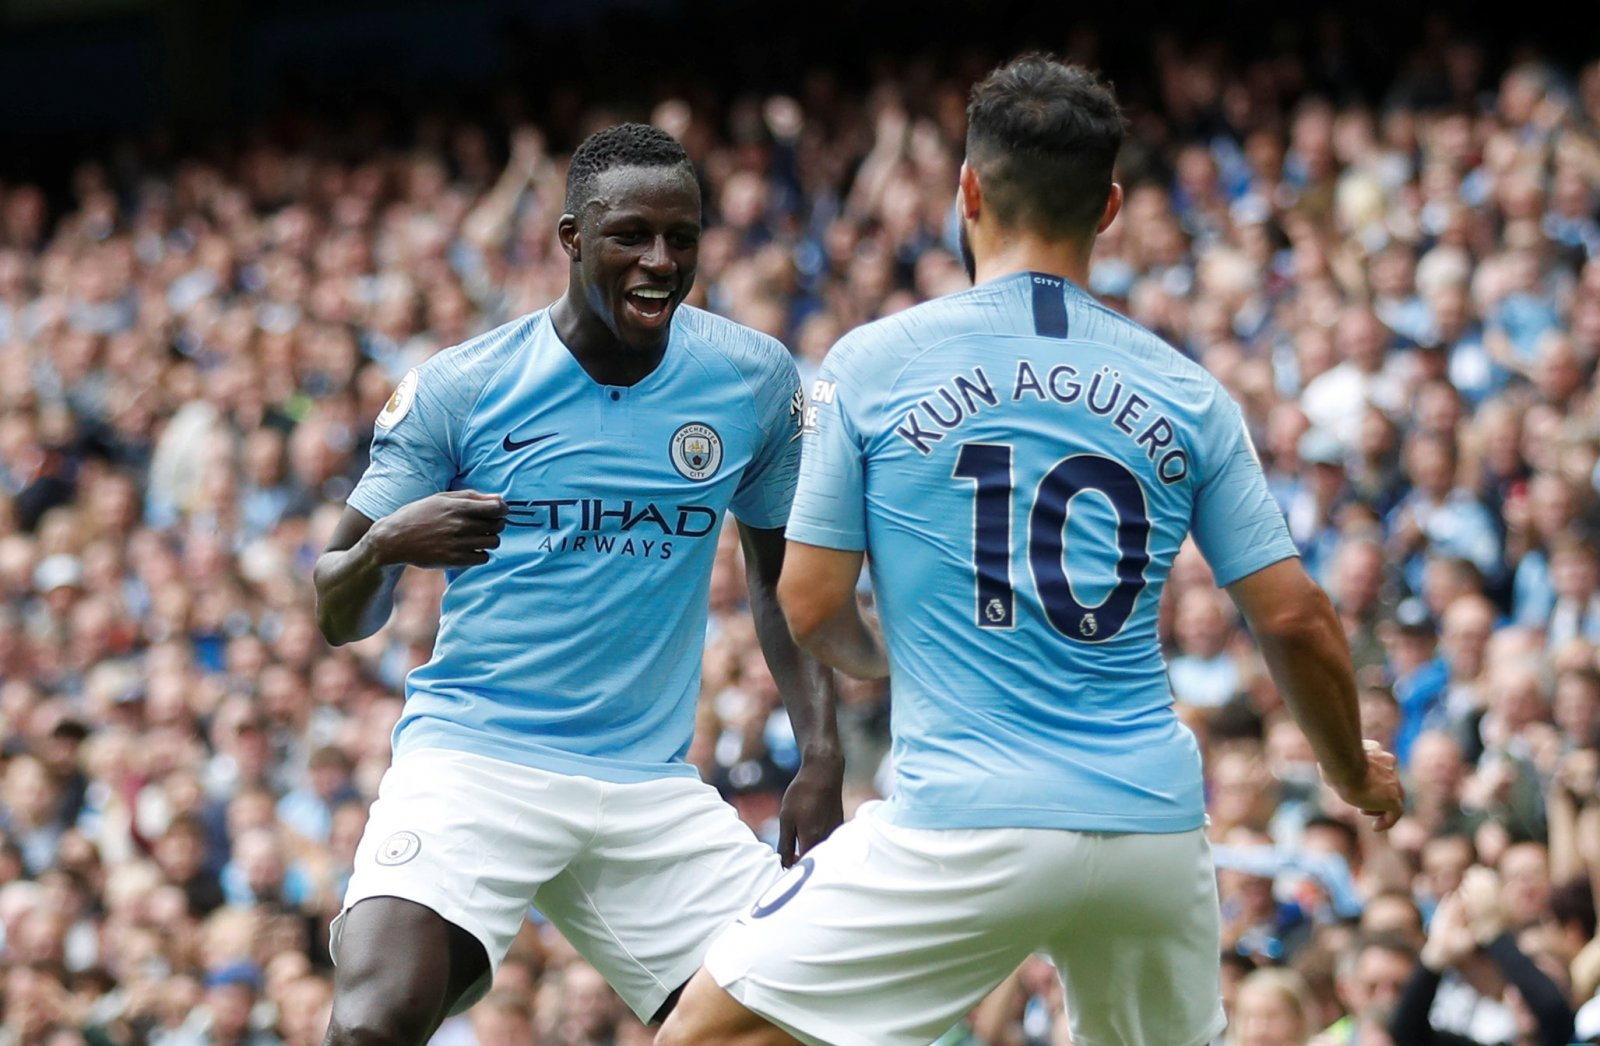 Benjamin Mendy is showing exactly what Manchester City missed last season